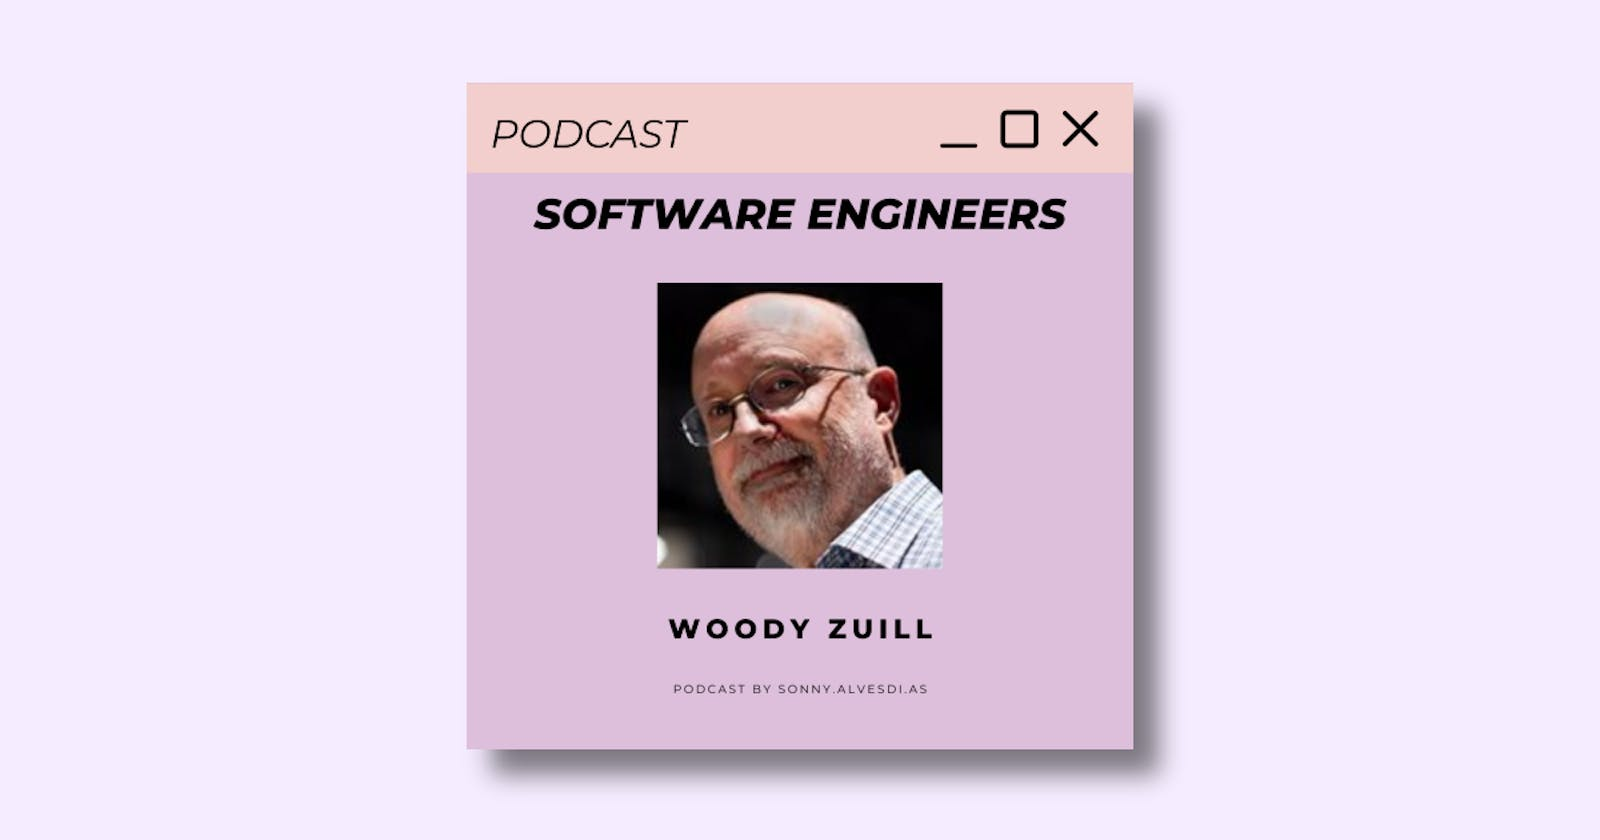 🎙️ Software Engineers Podcast 🎙️ Episode 5 with Woody Zuill